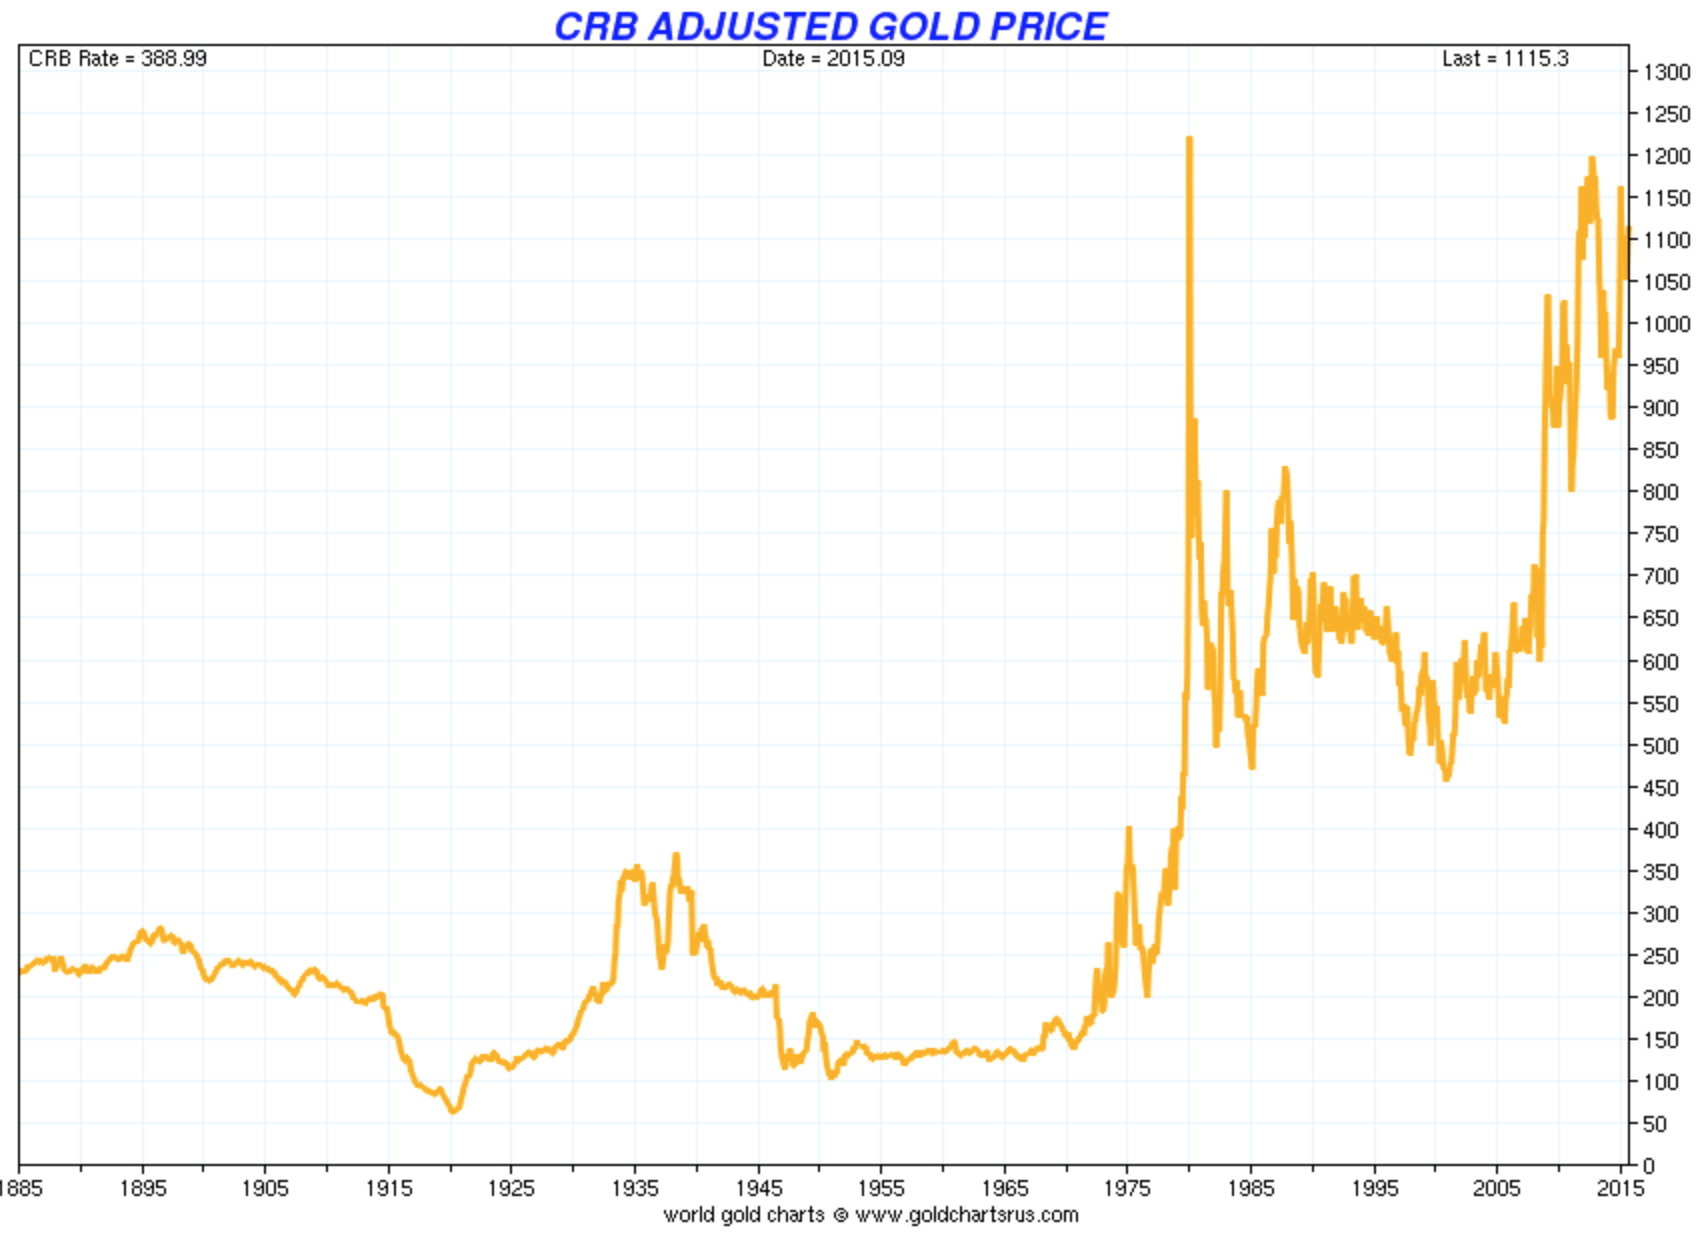 Gold price adjusted by a basket of commodities (CRB Index)